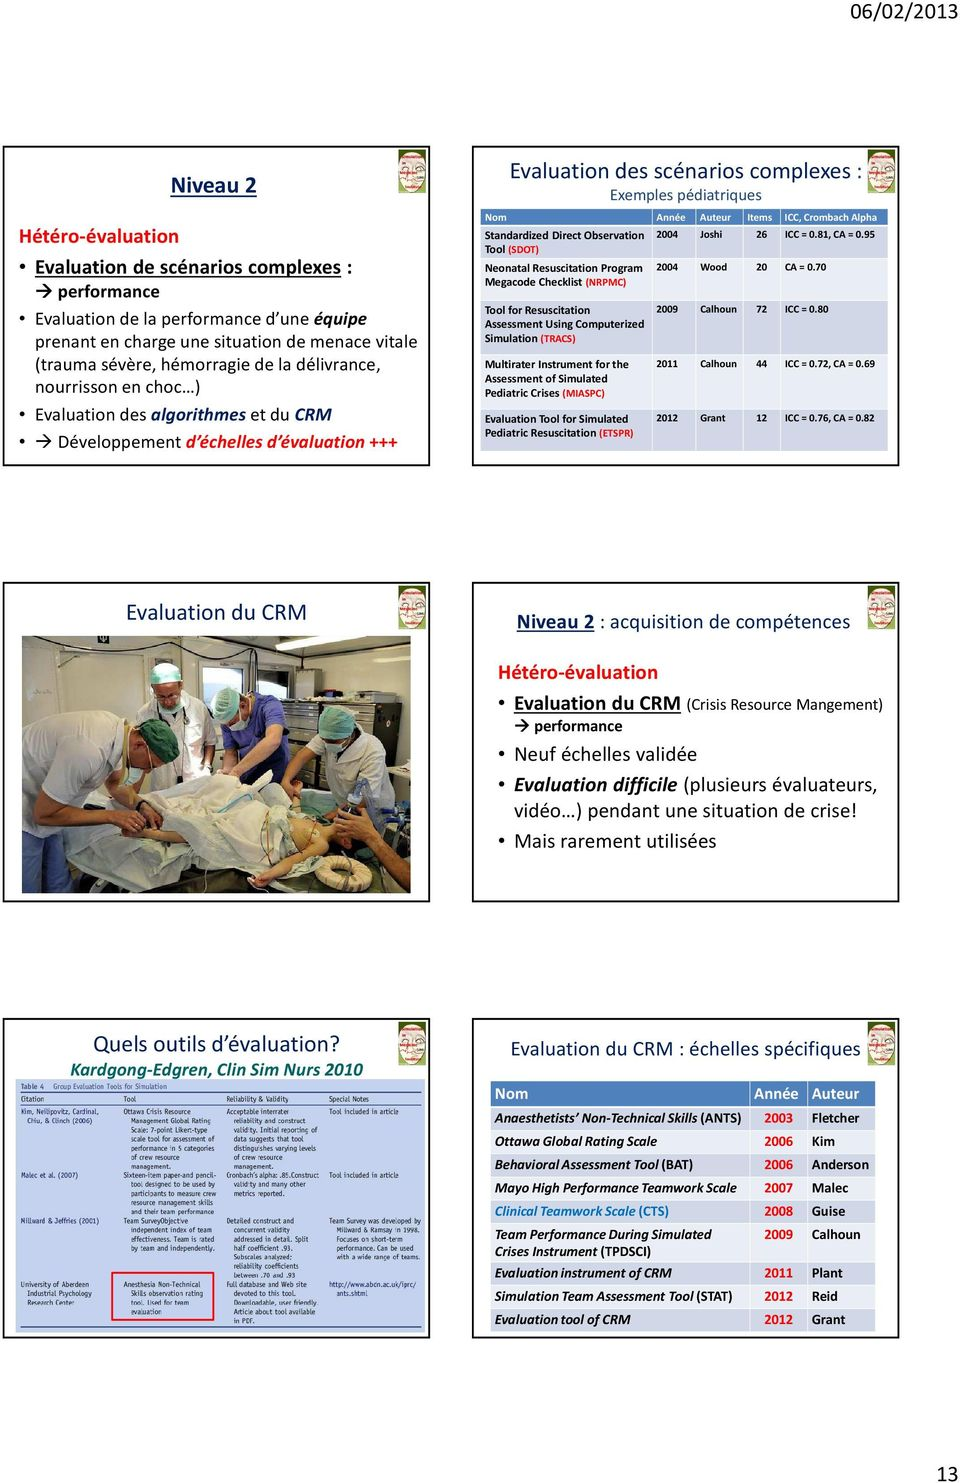 Crombach Alpha Standardized Direct Observation Tool(SDOT) NeonatalResuscitation Program Megacode Checklist (NRPMC) Tool for Resuscitation Assessment Using Computerized Simulation (TRACS)